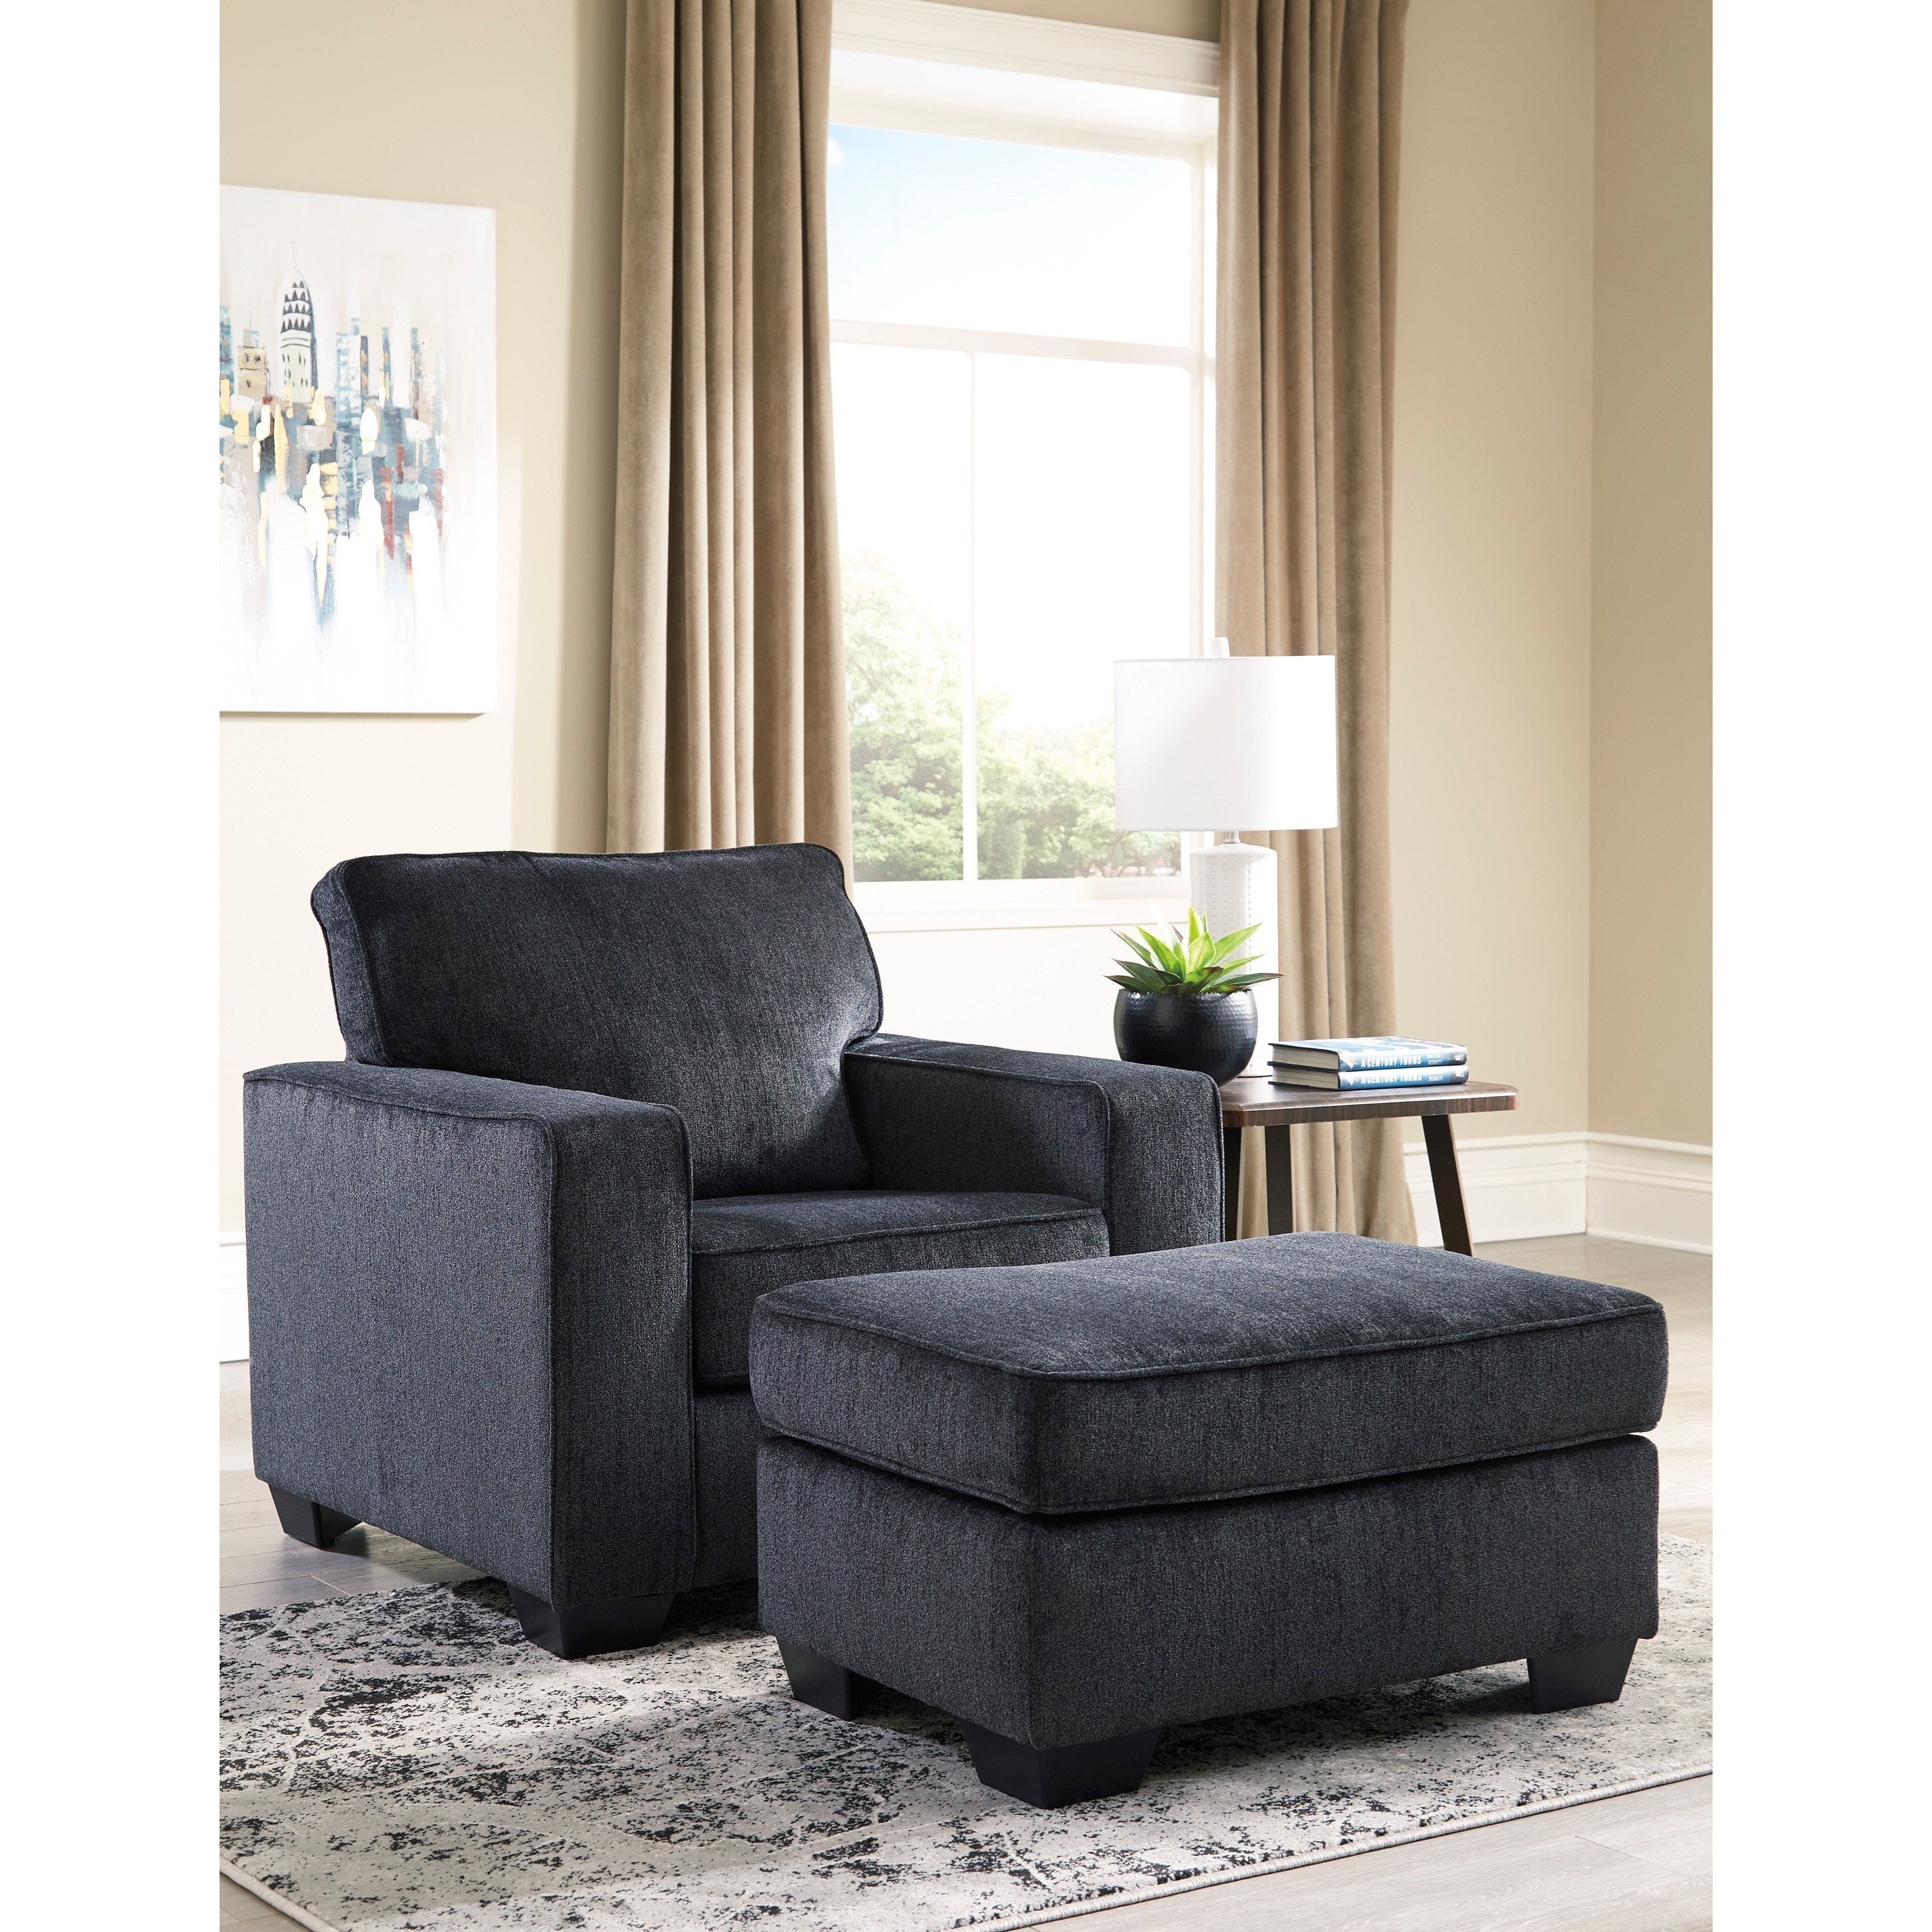 Contemporary Upholstered Chair and Ottoman